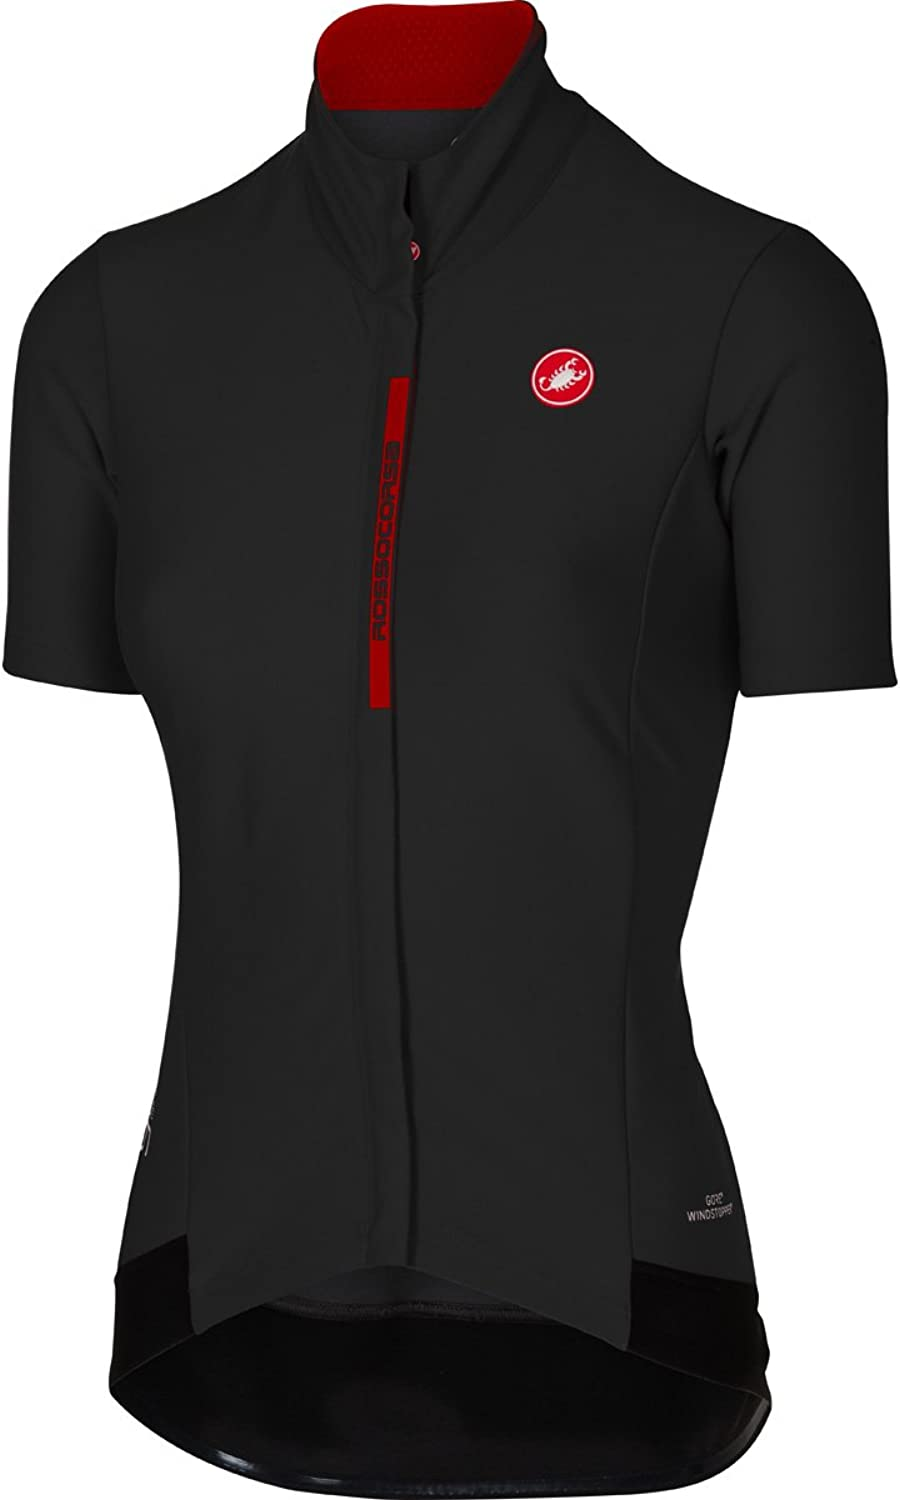 Castelli 2017 Women's Gabba 2 Short Sleeve Cycling Jacket